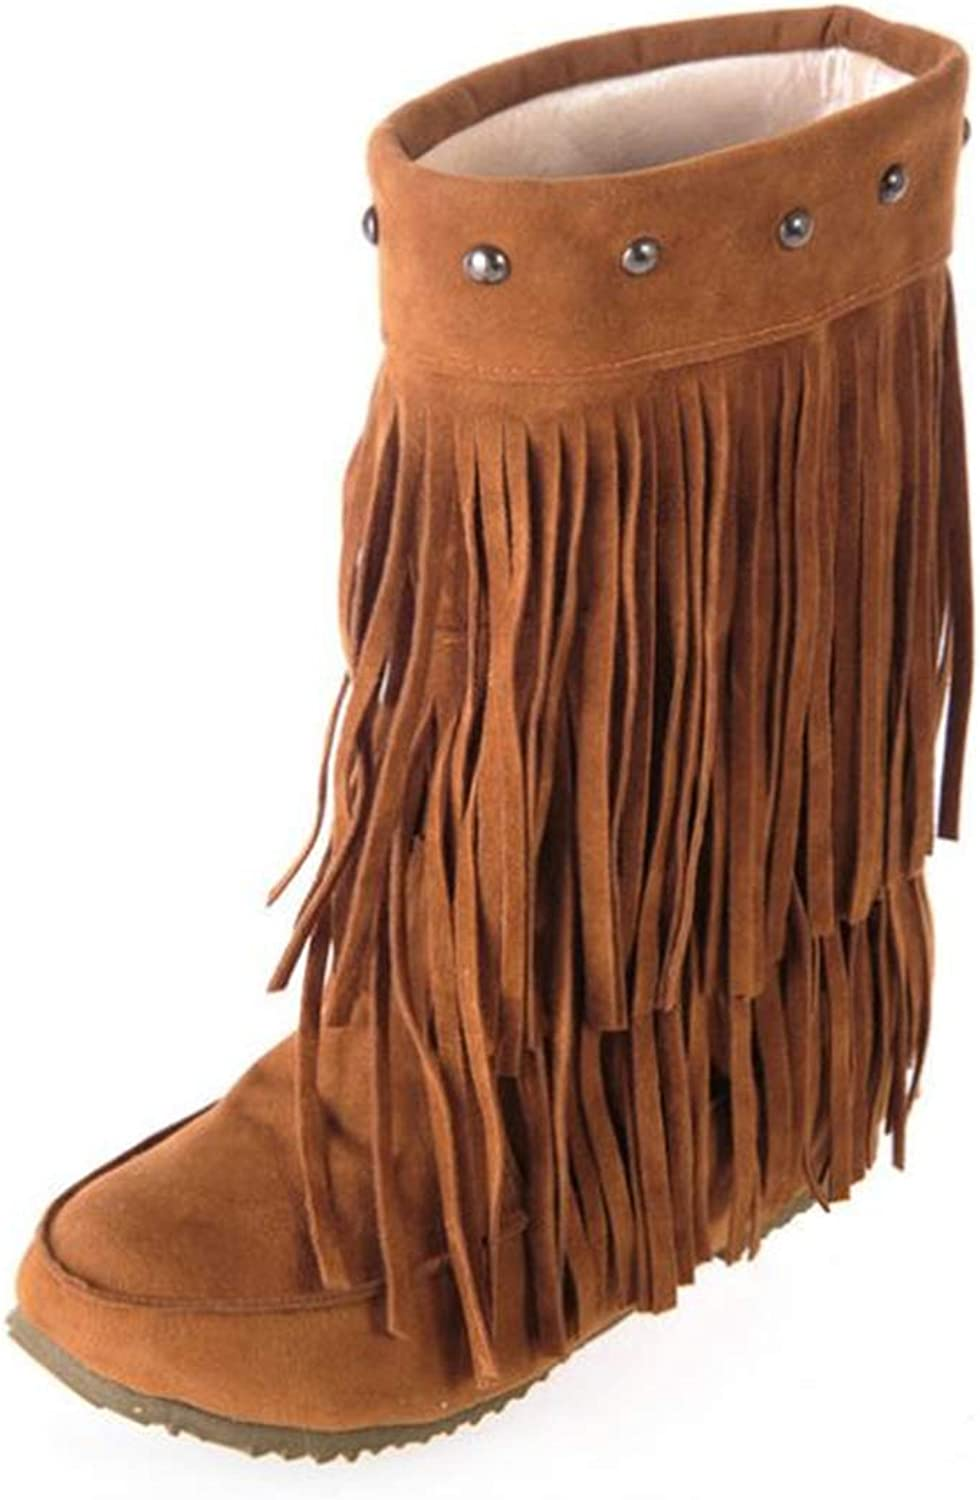 CHENSF Women's Winter Suede Boots Snow Boots with Tassel